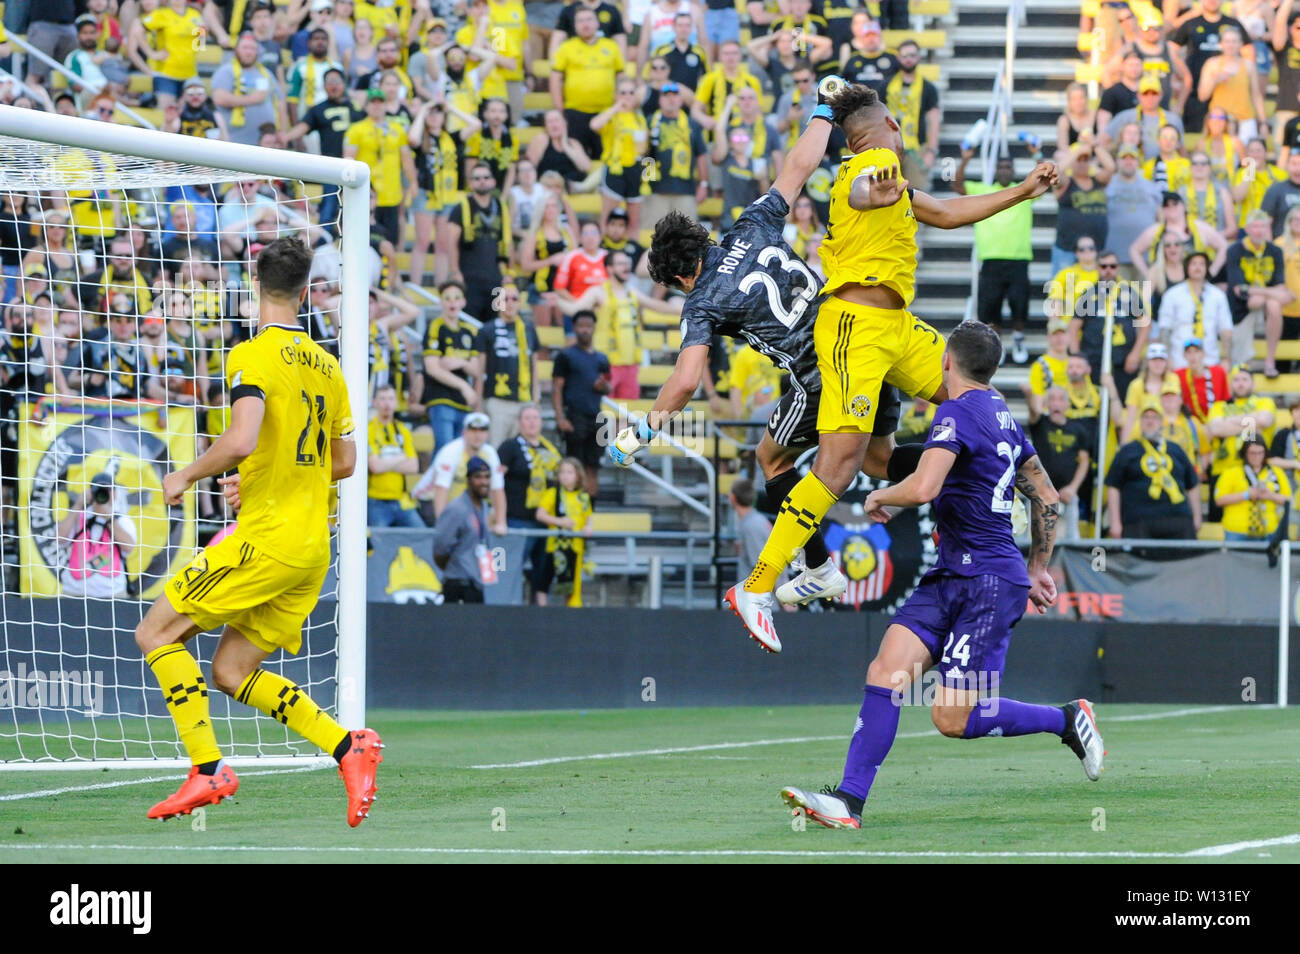 Saturday, June 29, 2019: Orlando City goalkeeper Brian Rowe (23) and Columbus Crew SC forward JJ Williams (33) collide while jumping for the ball the first half of the match between Orlando City and Columbus Crew SC at MAPFRE Stadium, in Columbus OH. Mandatory Photo Credit: Dorn Byg/Cal Sport Media. Orlando City 1 - Columbus Crew SC 0 after the first half Stock Photo